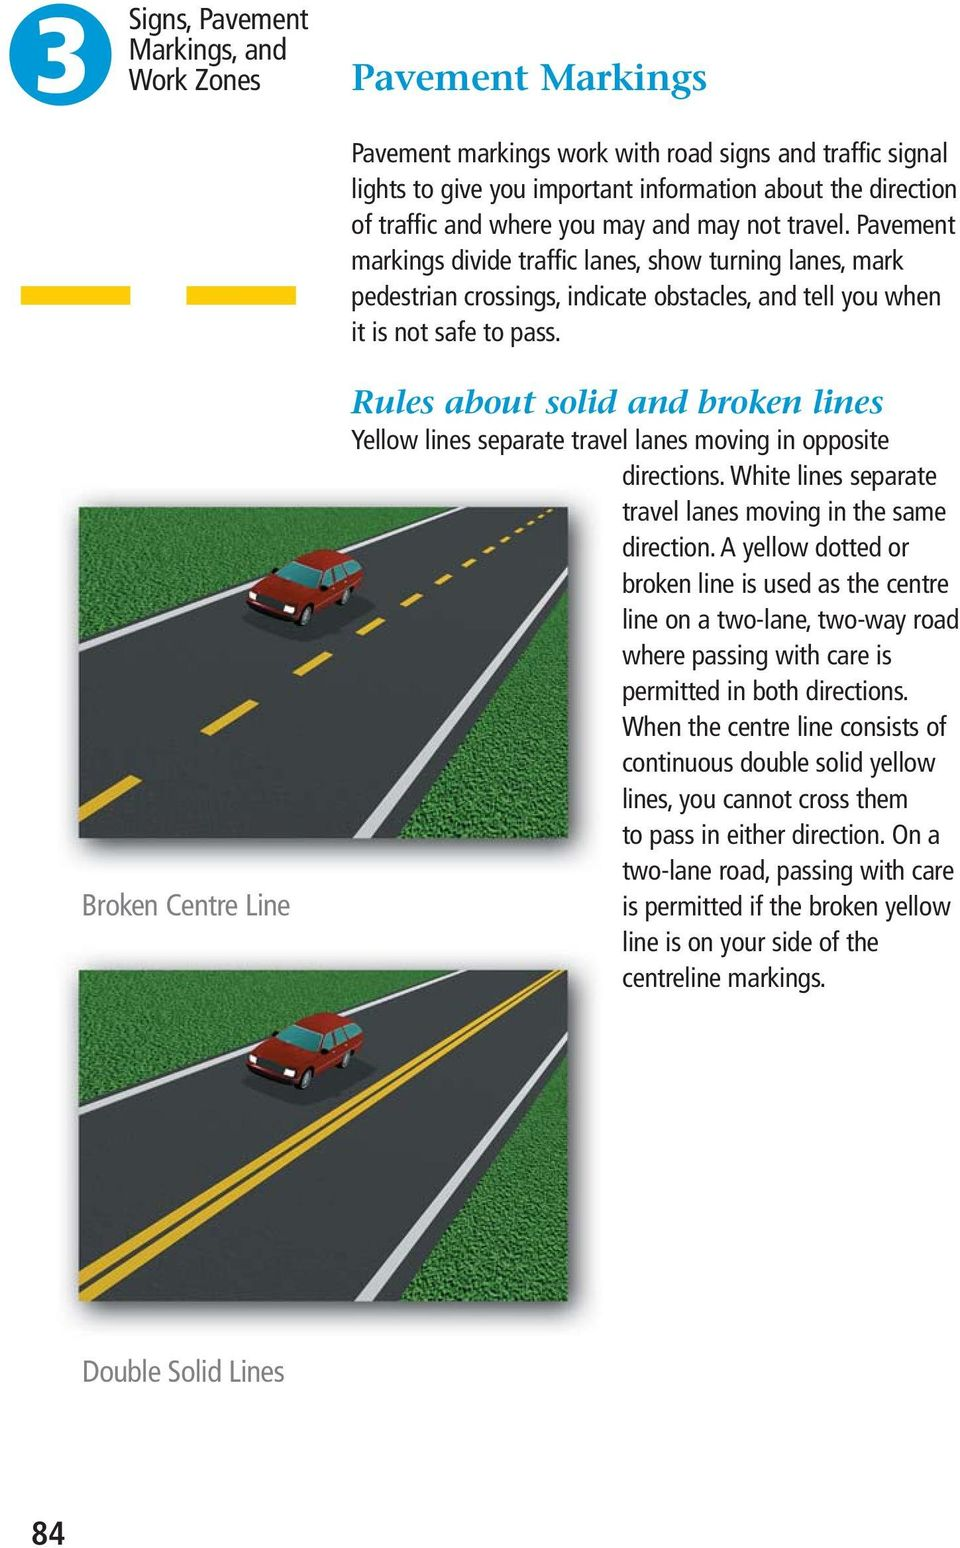 Broken Centre Line Rules about solid and broken lines Yellow lines separate travel lanes moving in opposite directions. White lines separate travel lanes moving in the same direction.